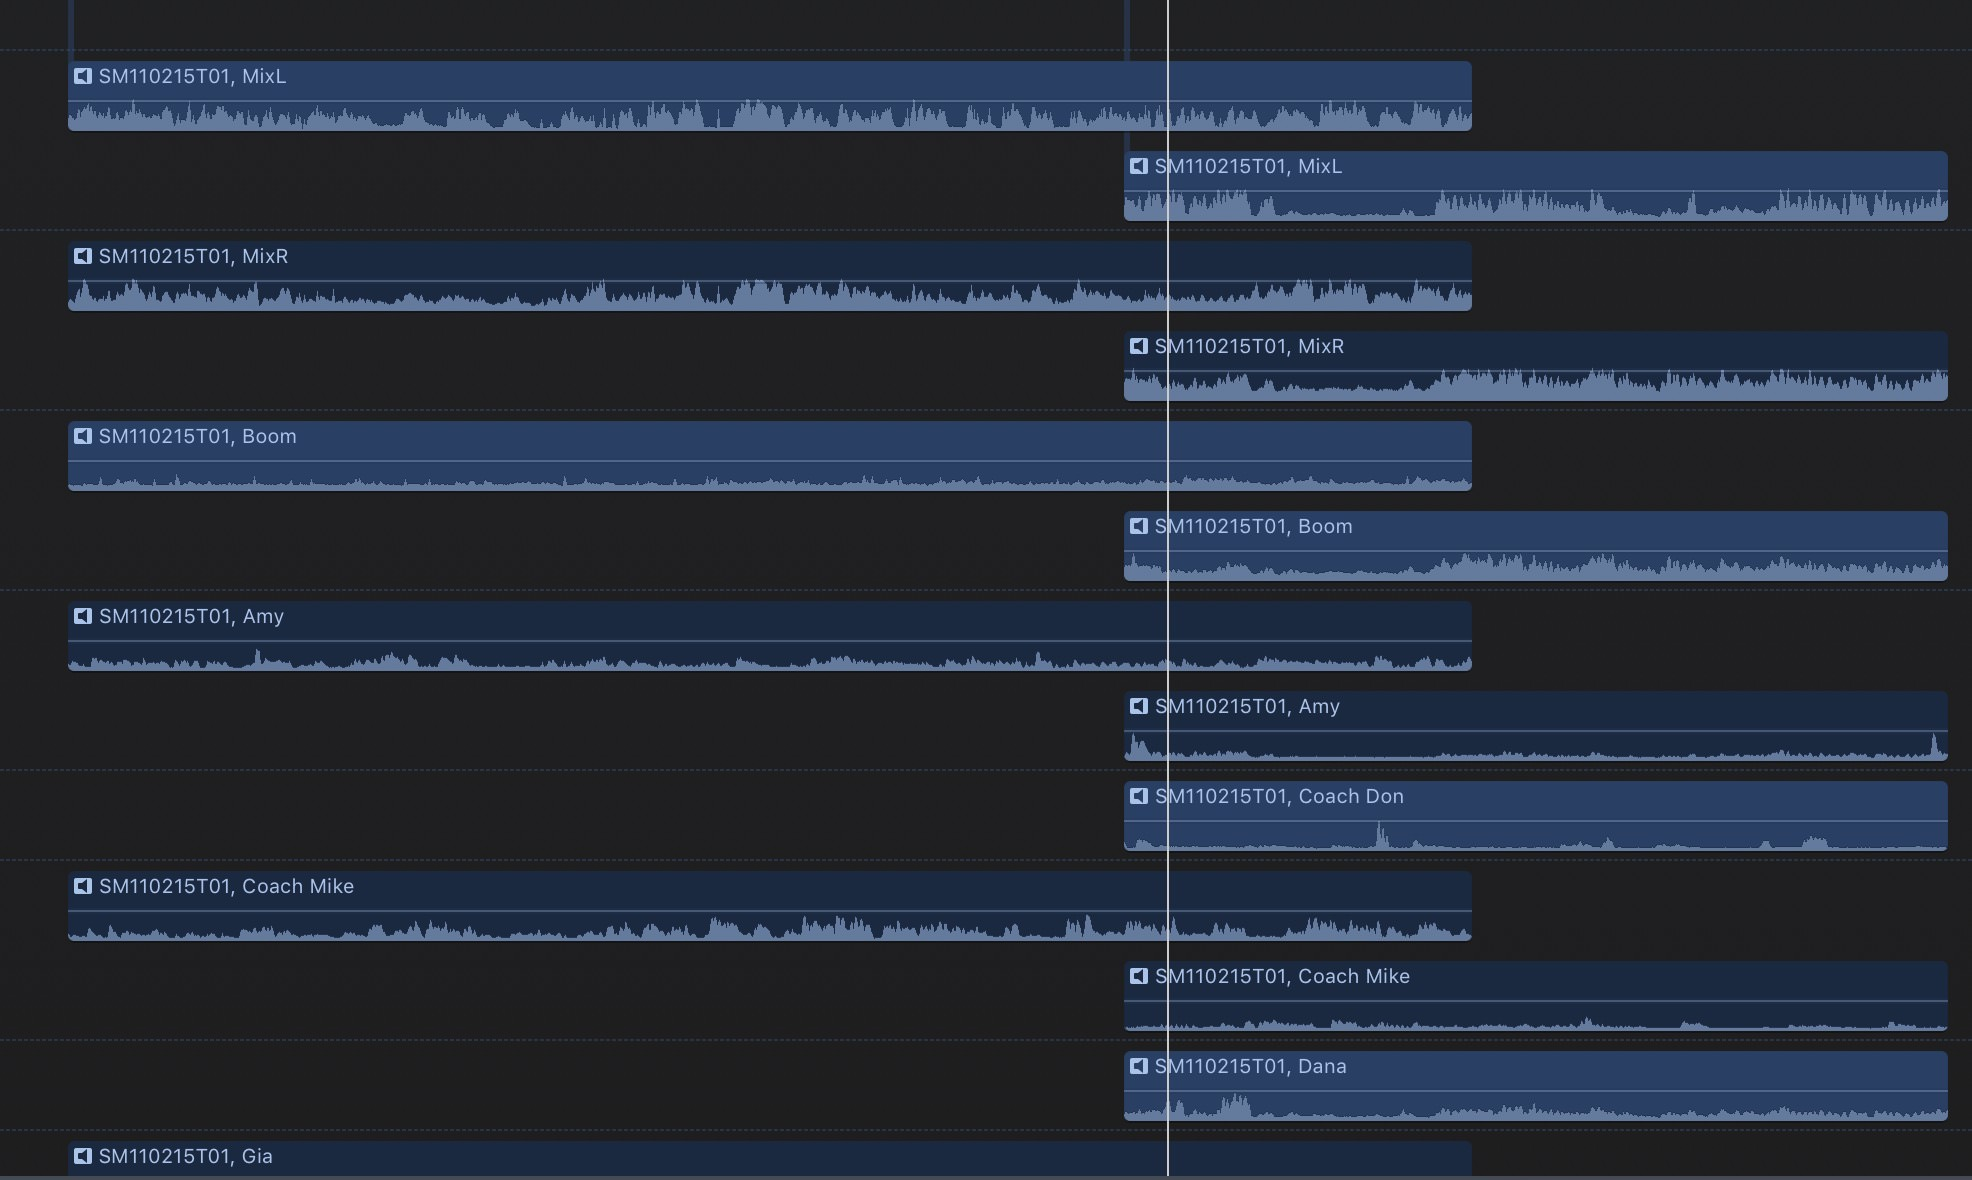 fcpx-ixml-in-timeline